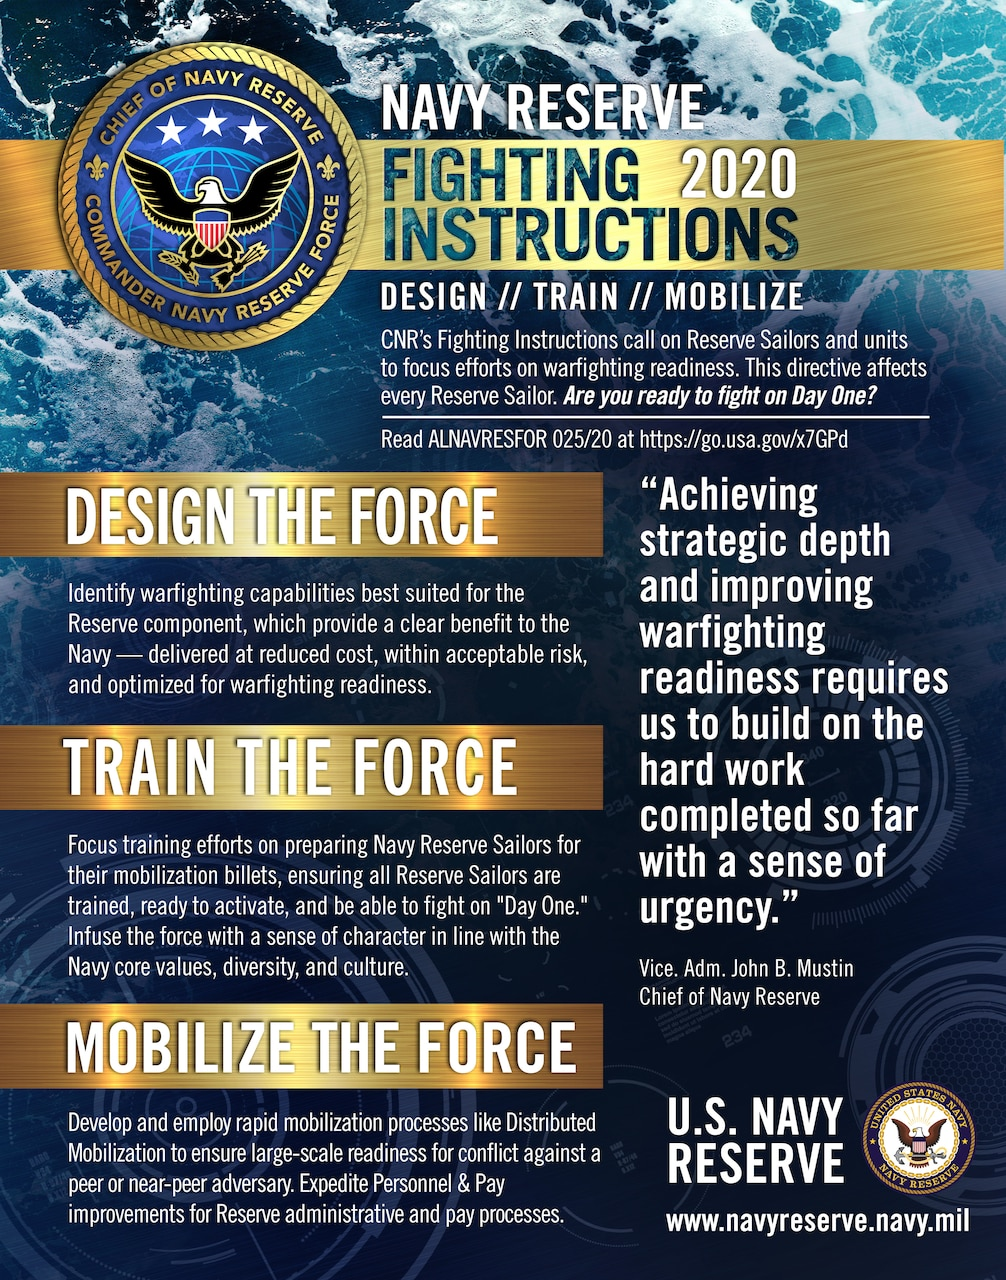 Navy Reserve Fighting Instructions 2020 (U.S. Navy graphic by MCC Stephen Hickok)